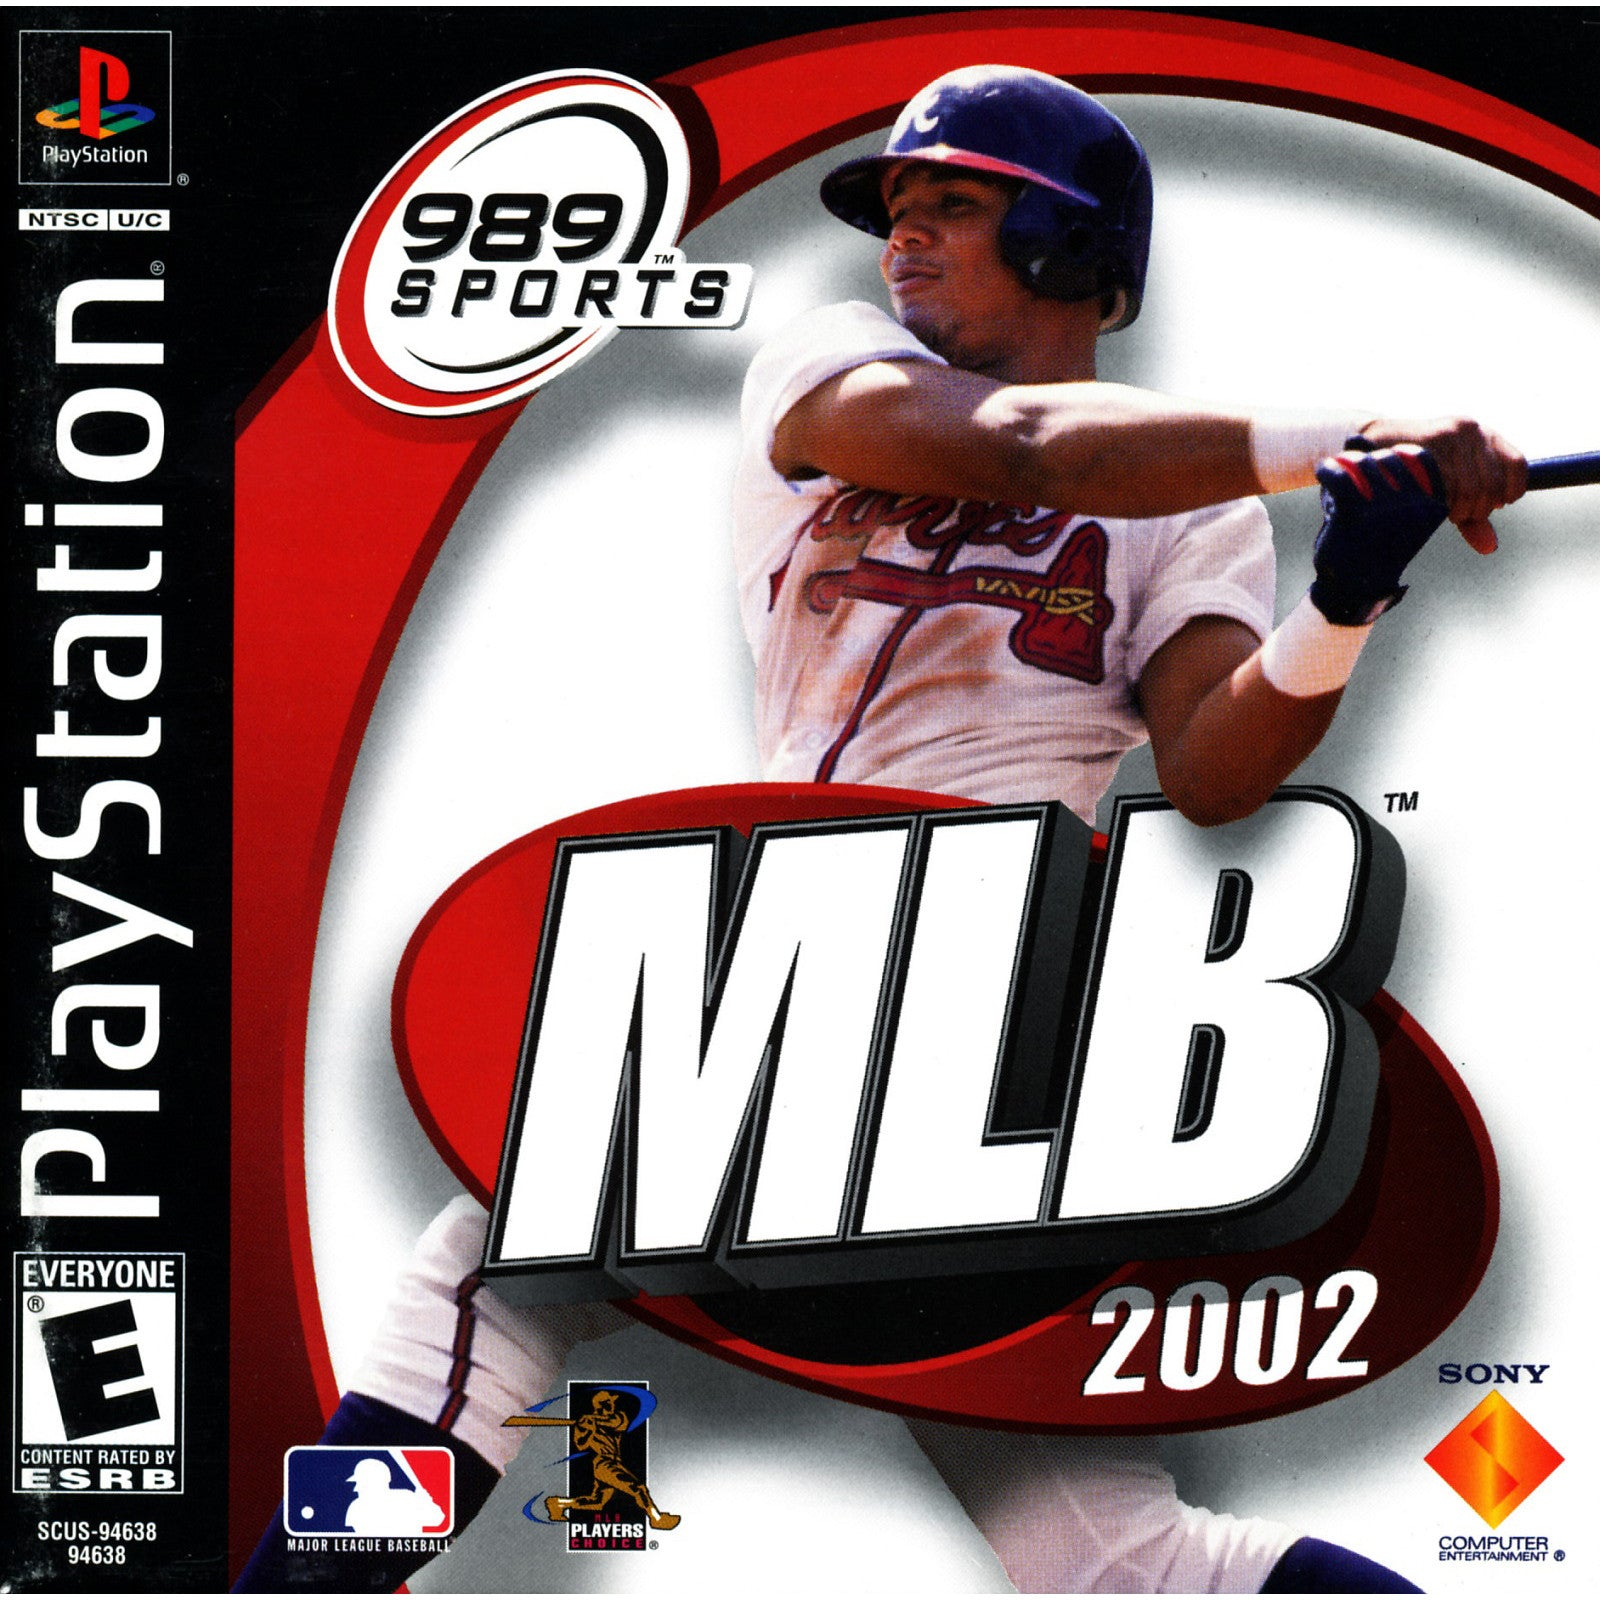 MLB 2002 for PlayStation 1